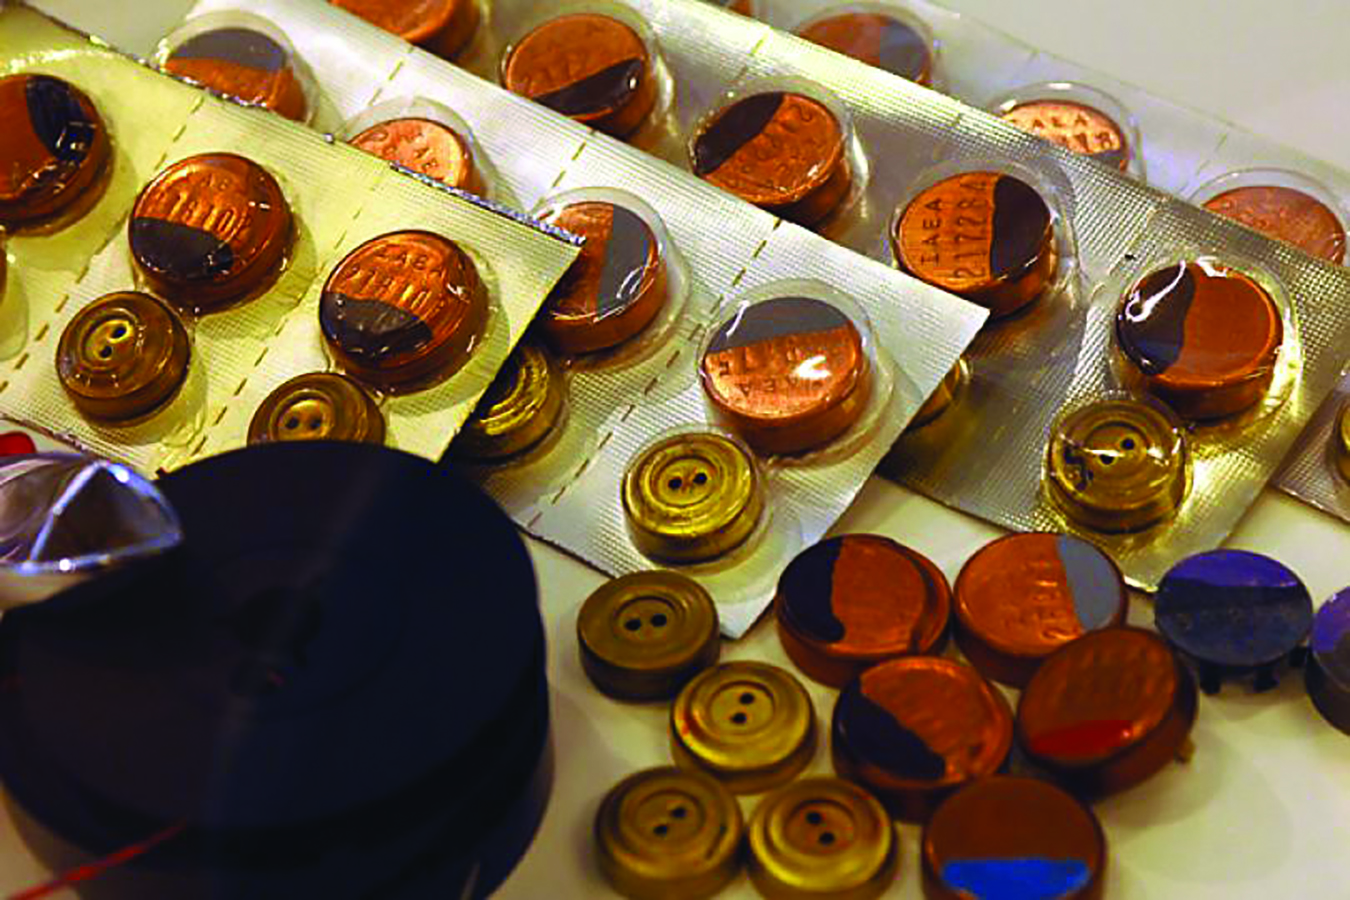 Loose and packaged seals used in training. Photo by Dean Calma/IAEA.